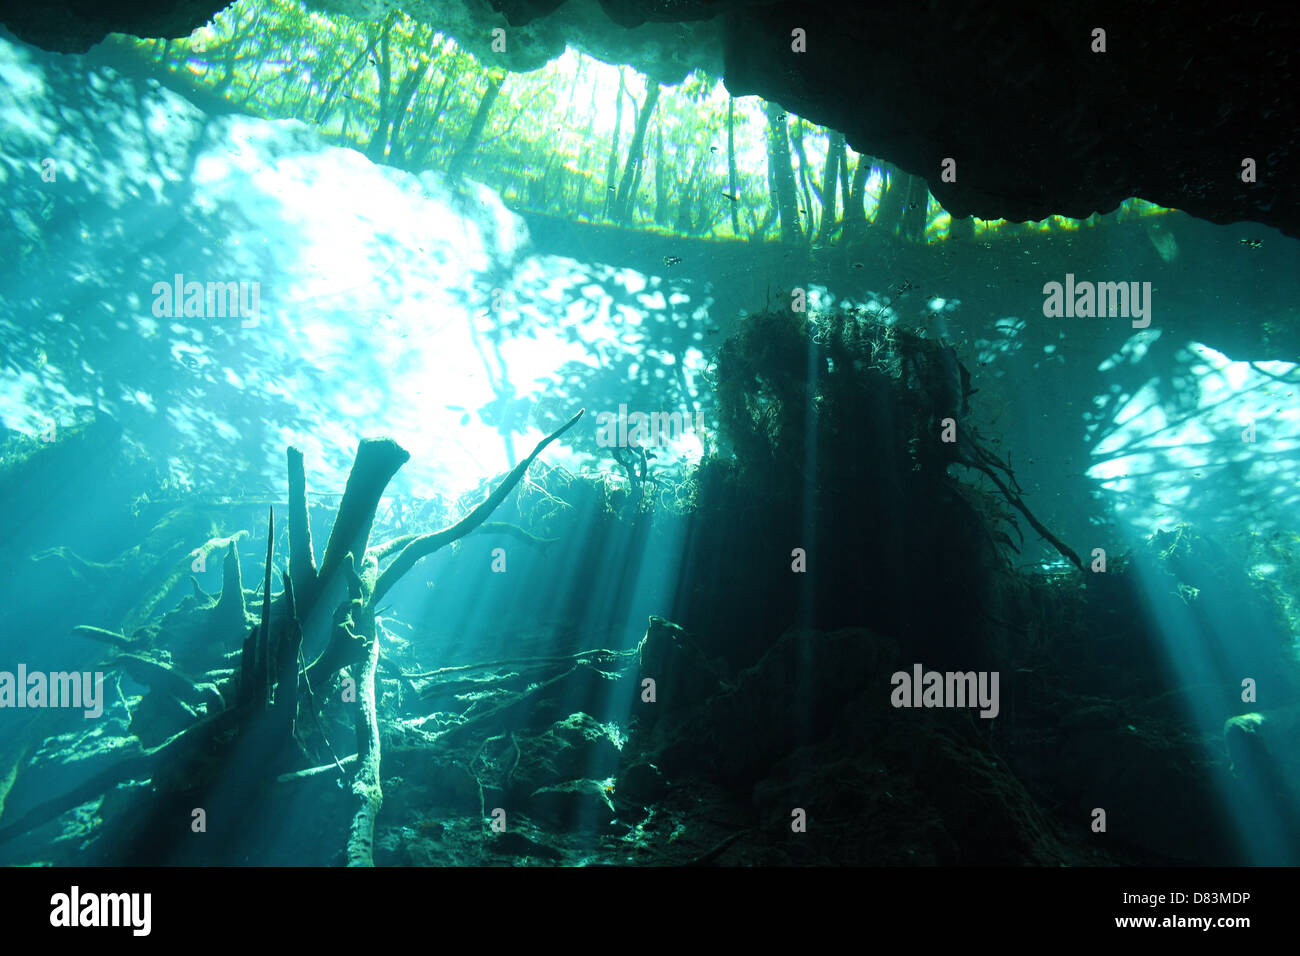 Sunbeams Breaking Through the Surface in Chac Mool Cenote, Playa del Carmen, Mexico - Stock Image